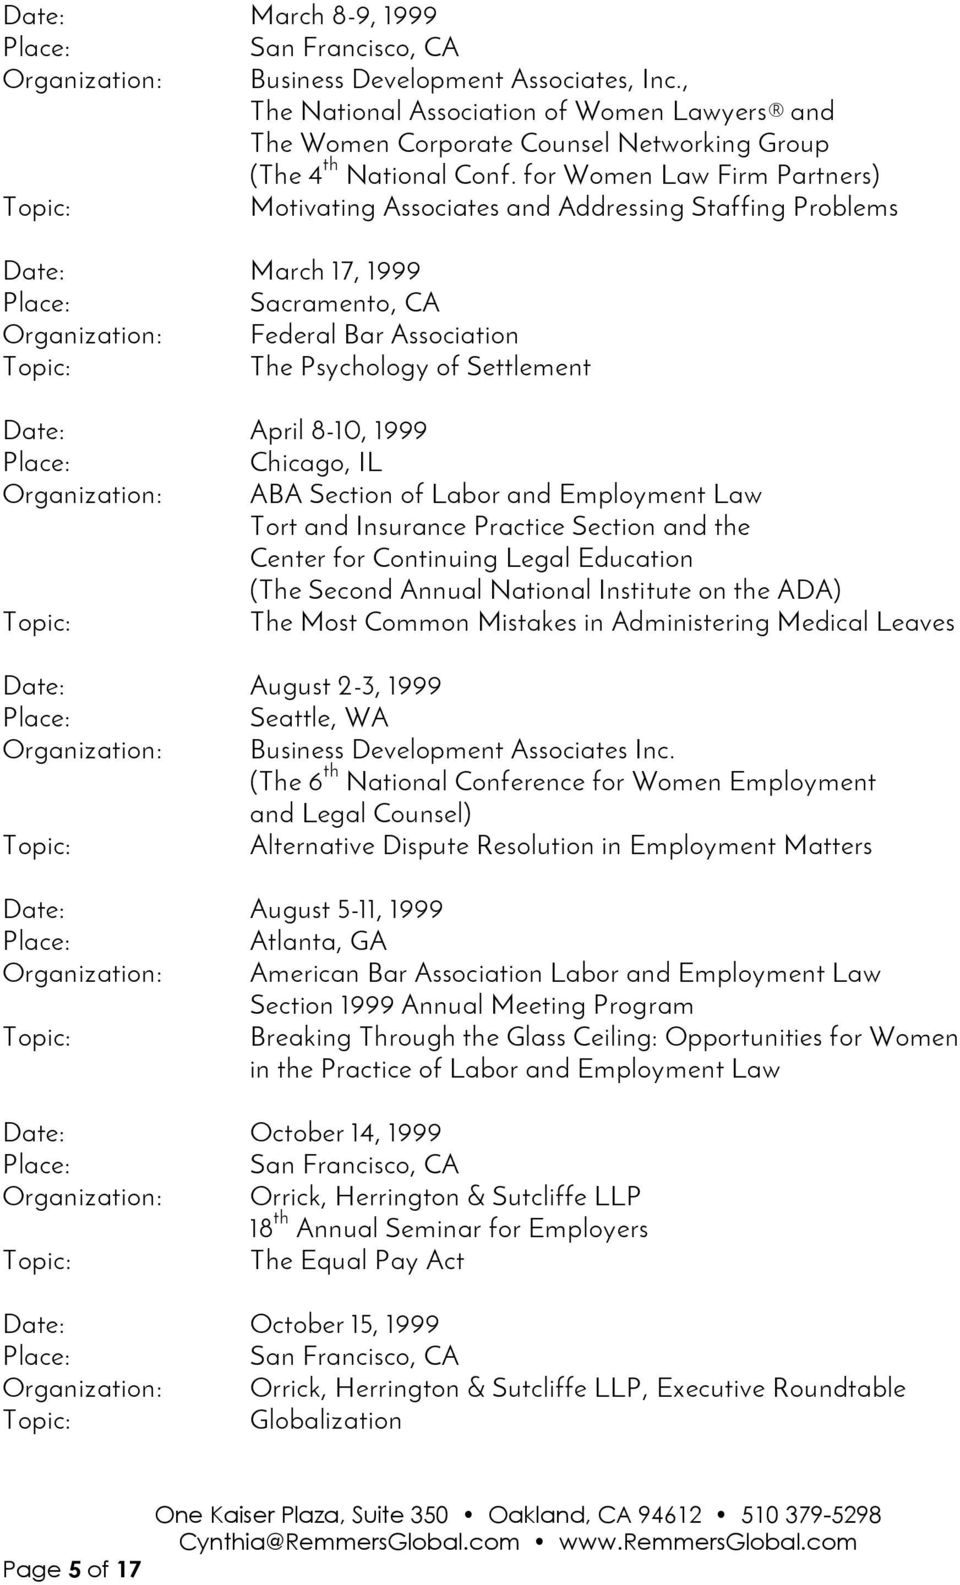 Chicago, IL Organization: ABA Section of Labor and Employment Law Tort and Insurance Practice Section and the Center for Continuing Legal Education (The Second Annual National Institute on the ADA)